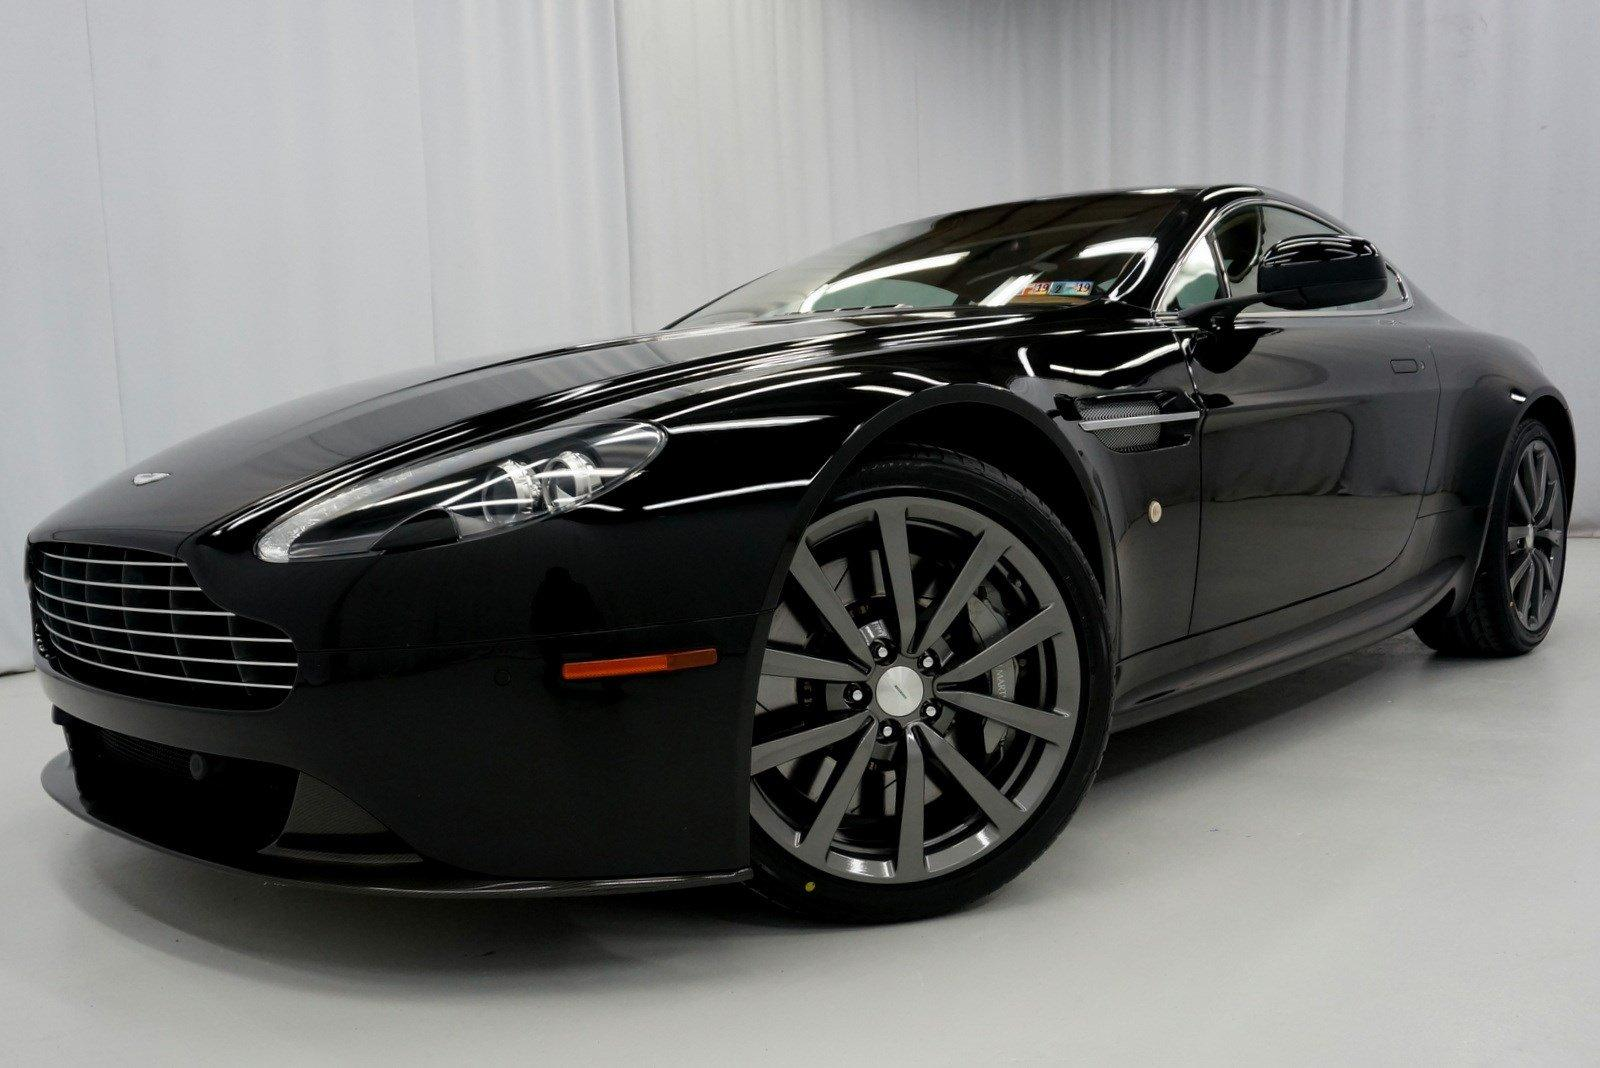 2012 aston martin v8 vantage stock # gc16631 for sale near king of